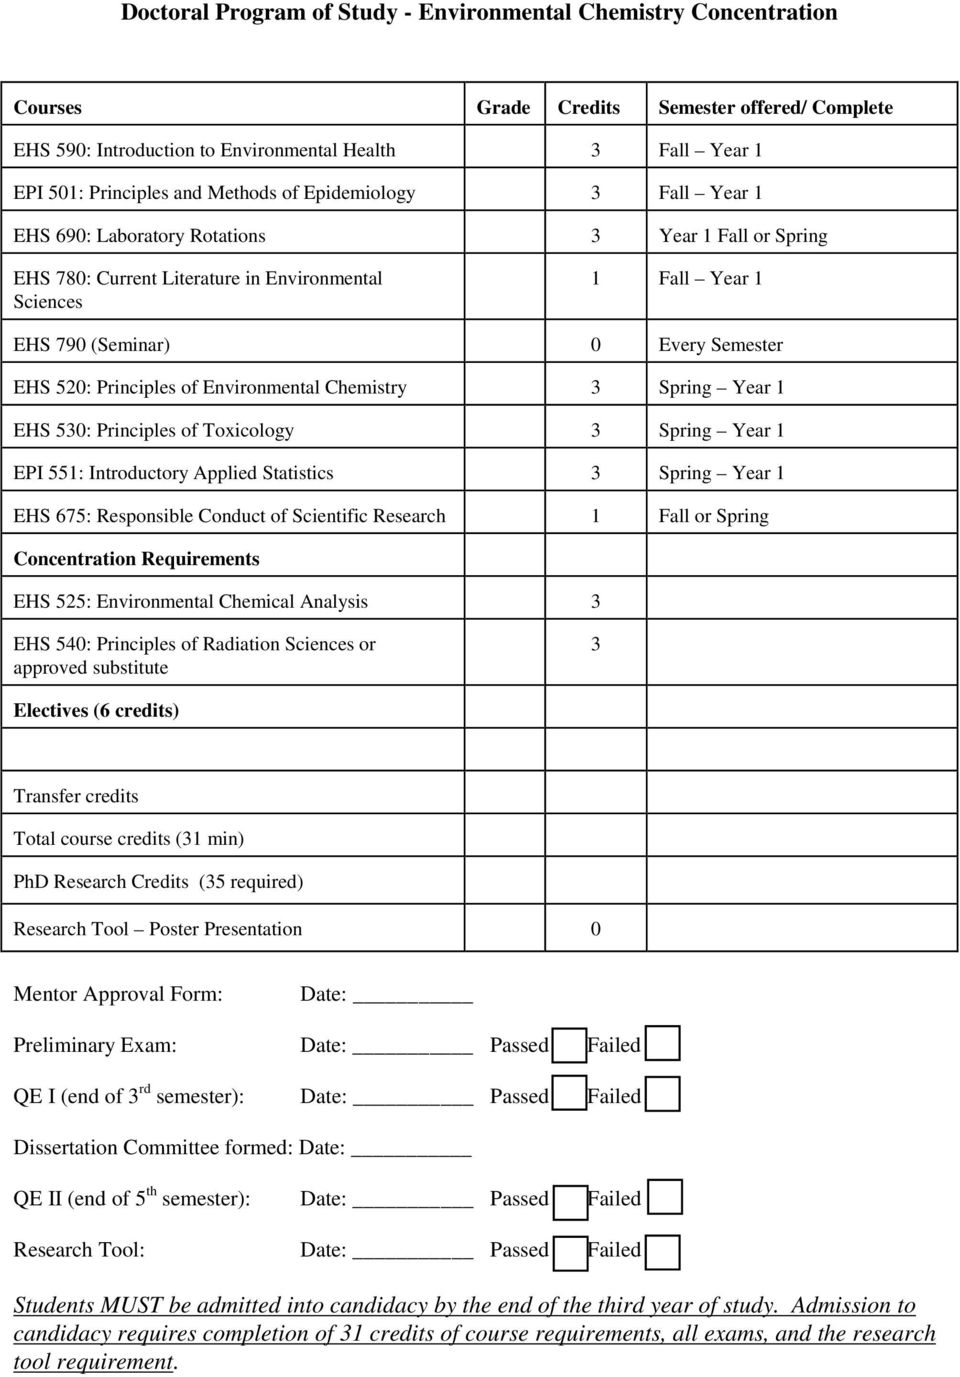 520: Principles of Environmental Chemistry 3 Spring Year 1 EHS 530: Principles of Toxicology 3 Spring Year 1 EPI 551: Introductory Applied Statistics 3 Spring Year 1 EHS 675: Responsible Conduct of